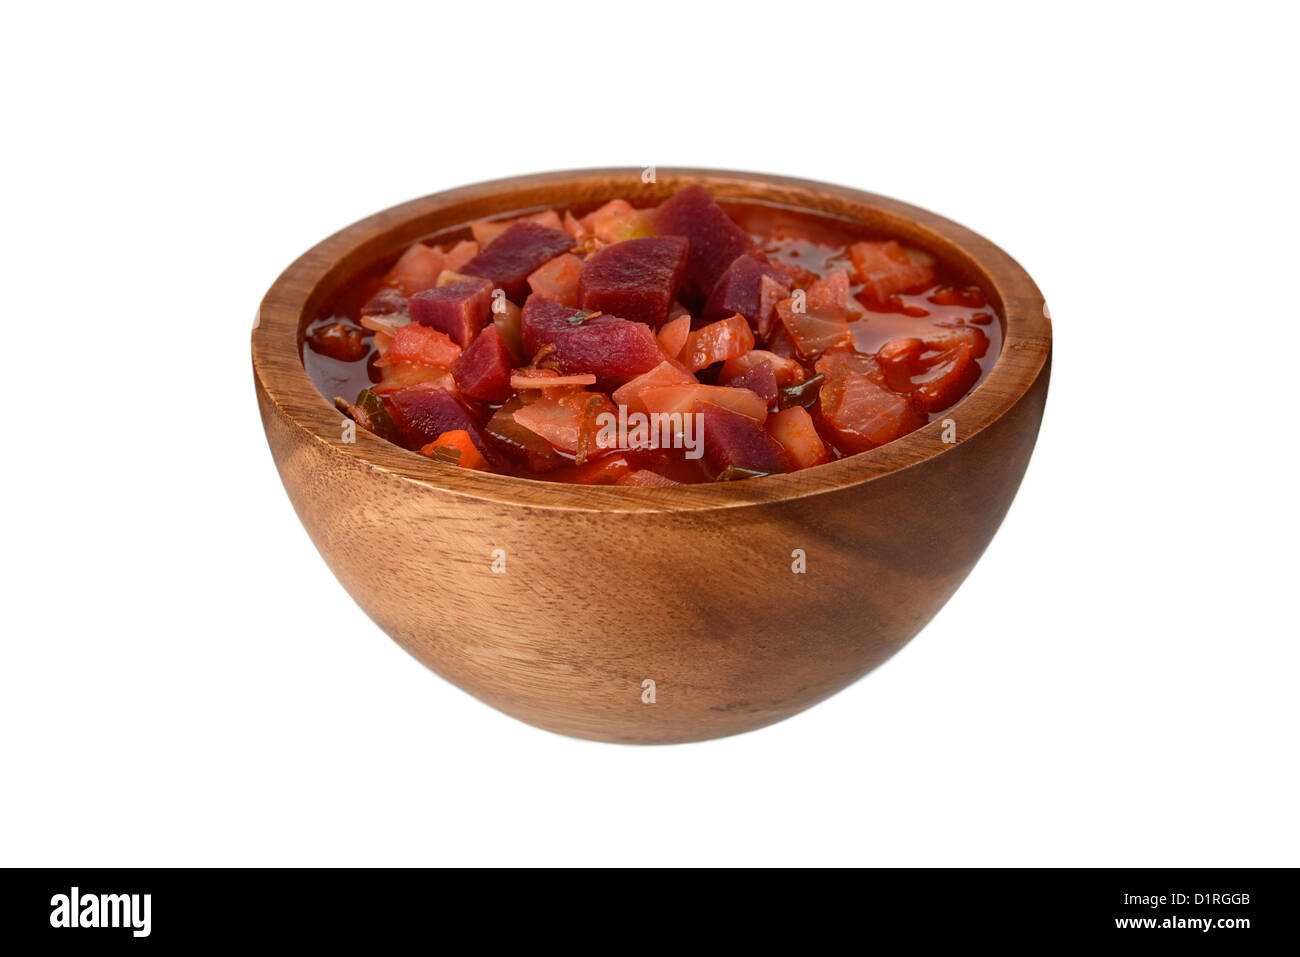 Bortsch, soupe de betteraves traditionnelle russe, ragoût Photo Stock